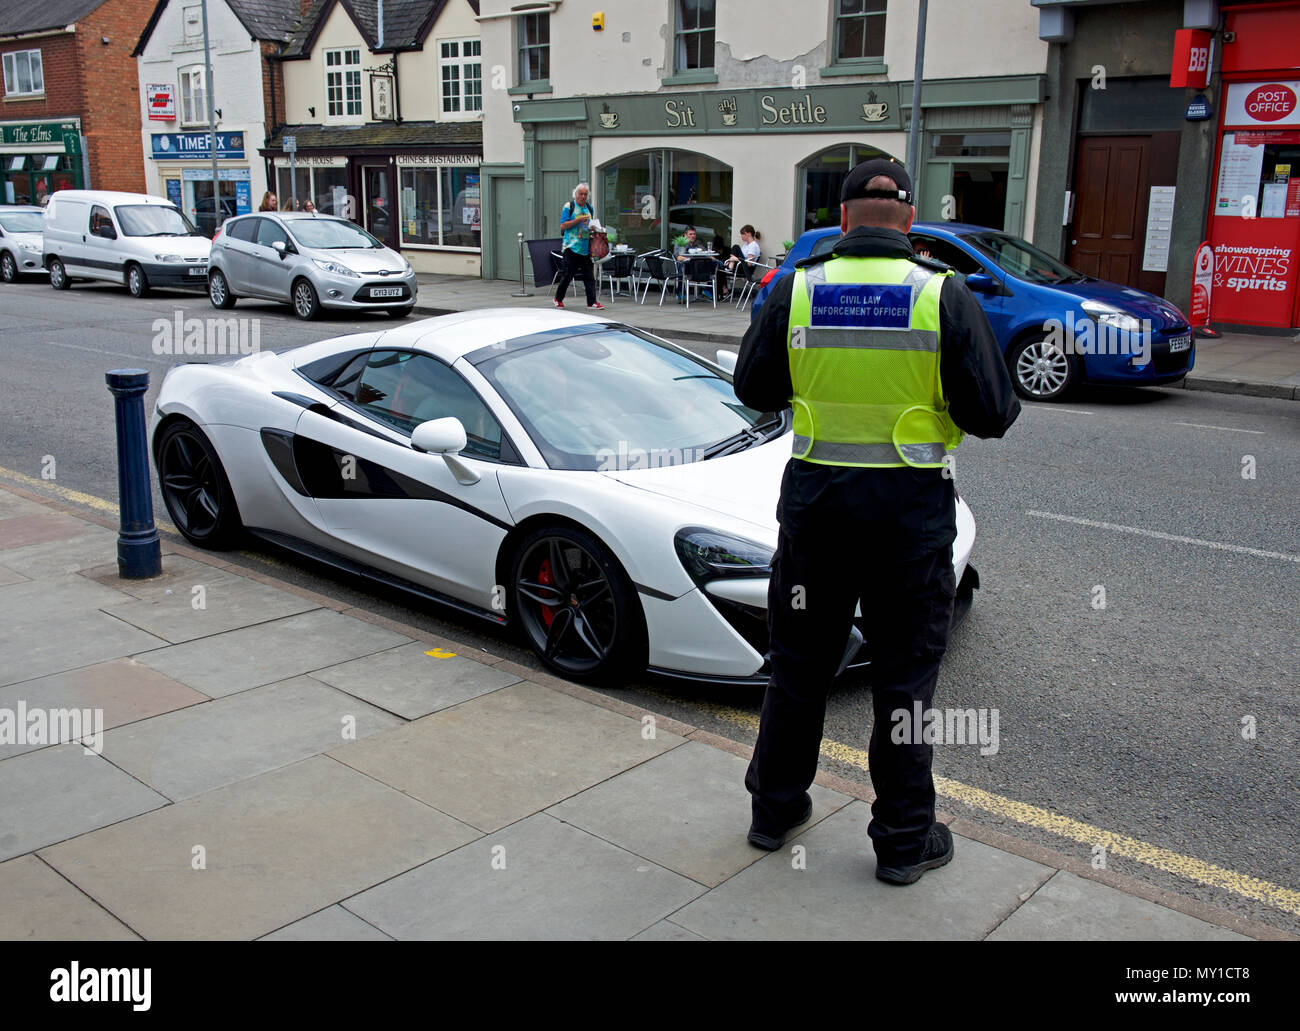 Traffic warden and sports car, parked on street, England UK Stock Photo